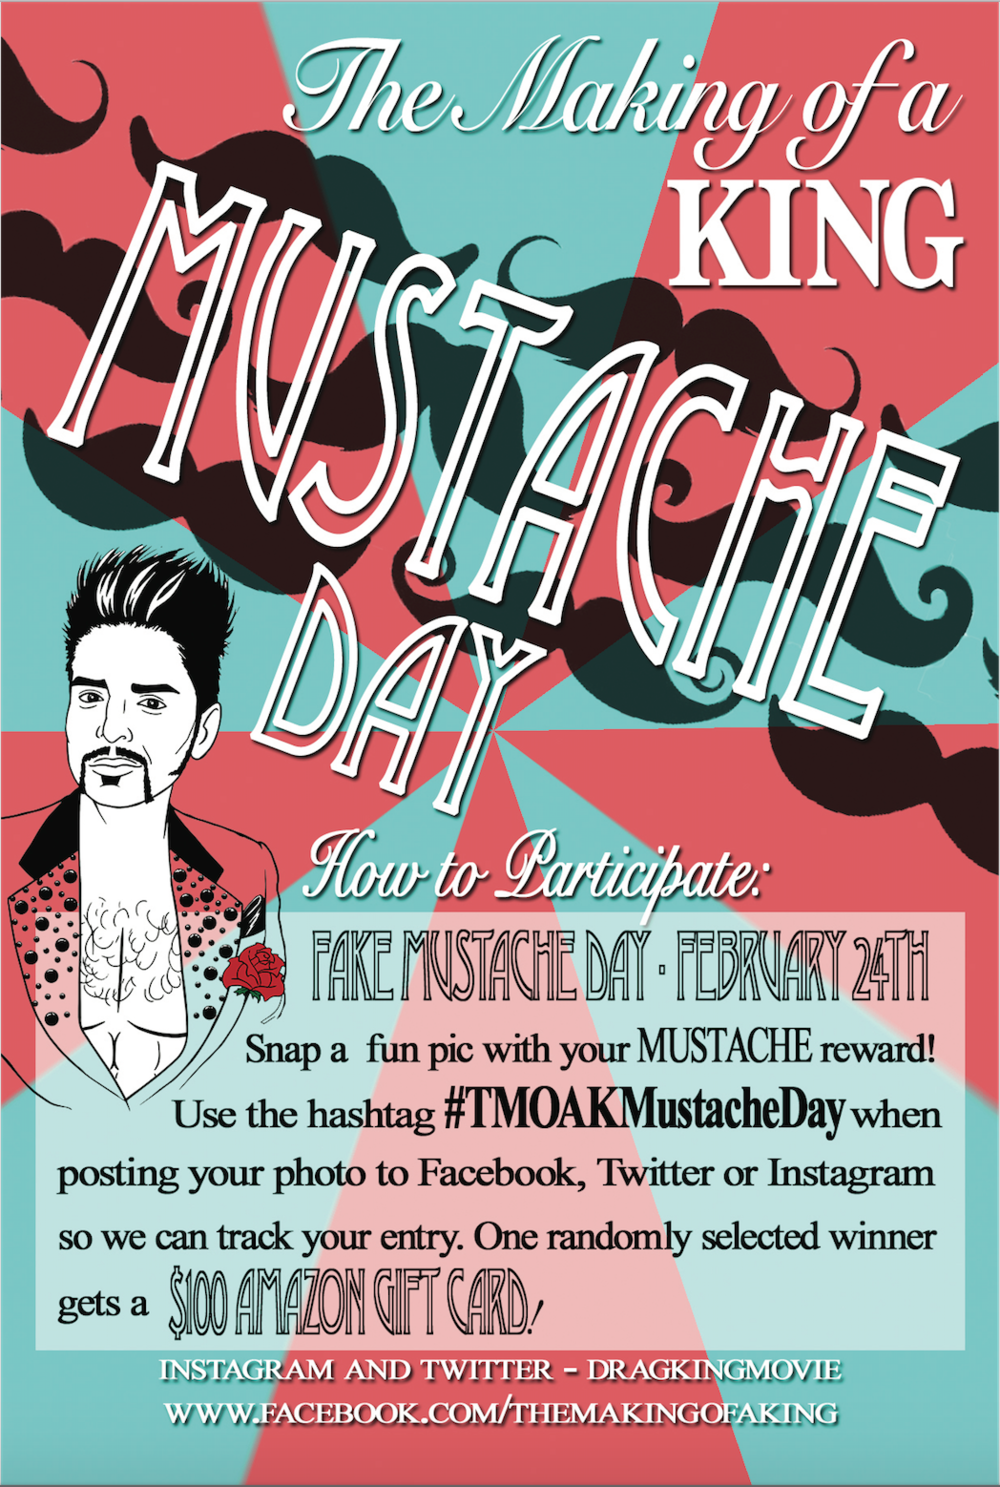 The Making of a King fundraiser flier